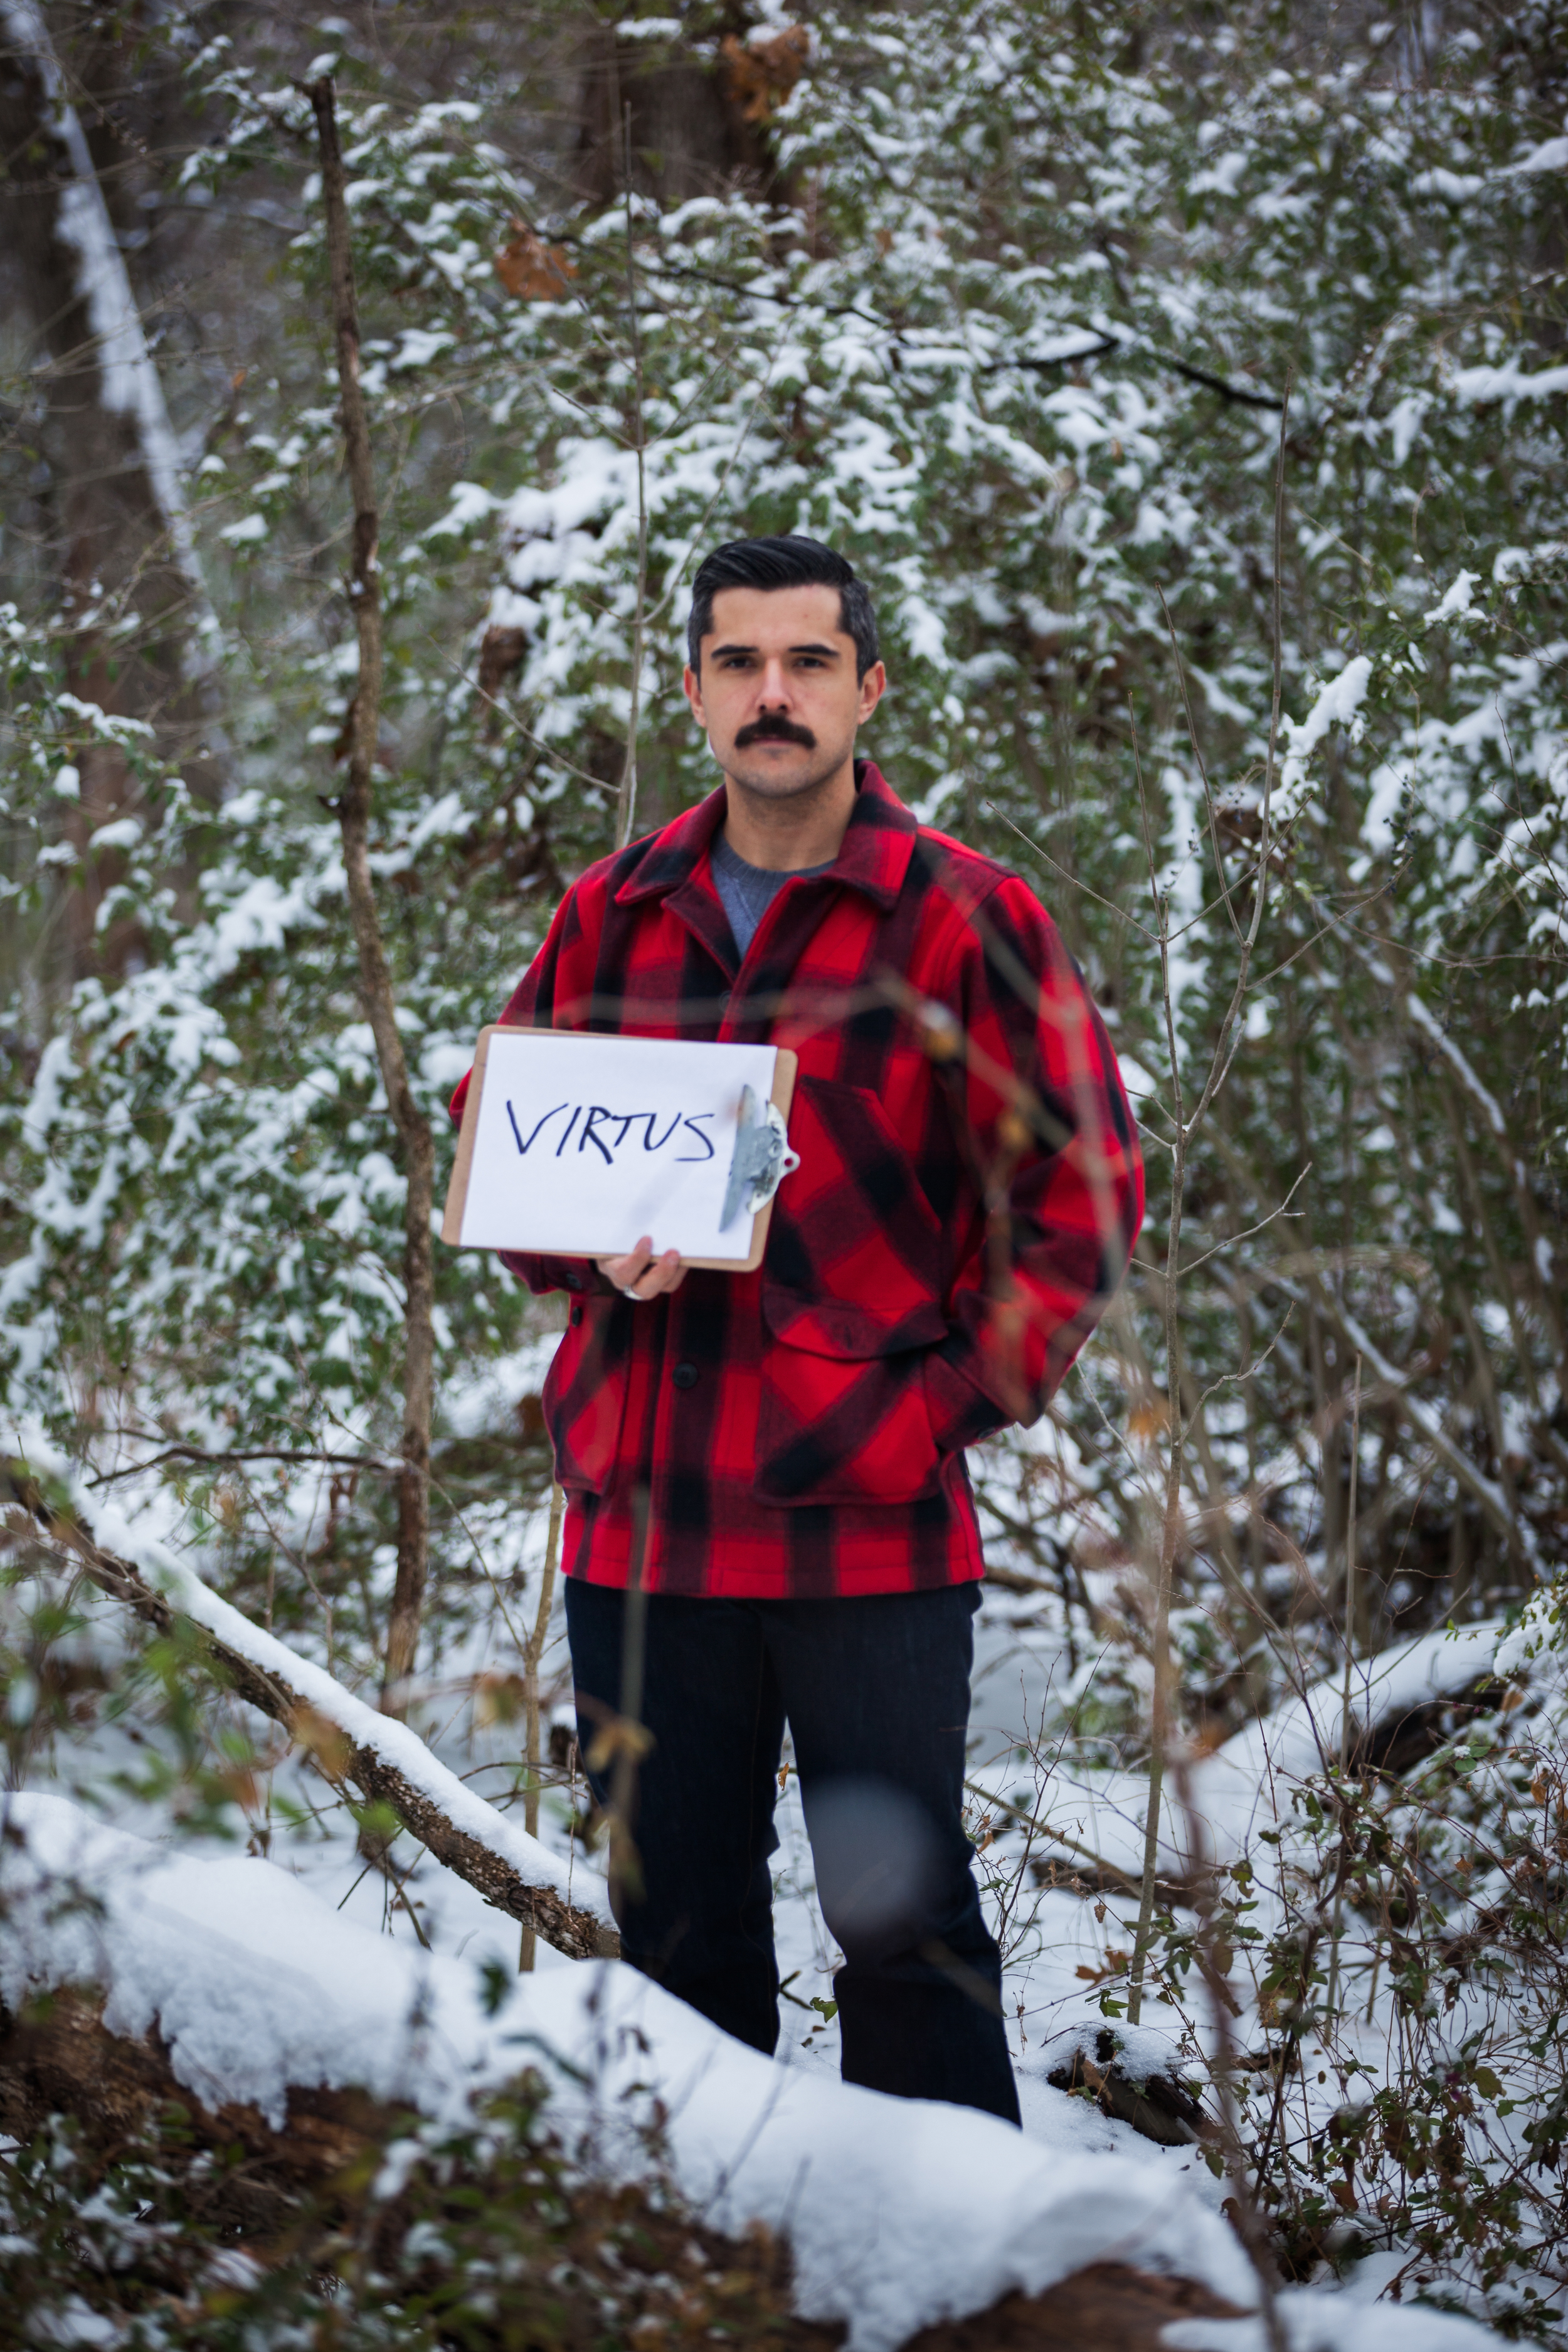 Man holding a sign in a snowy forrest with the word virtus on it.